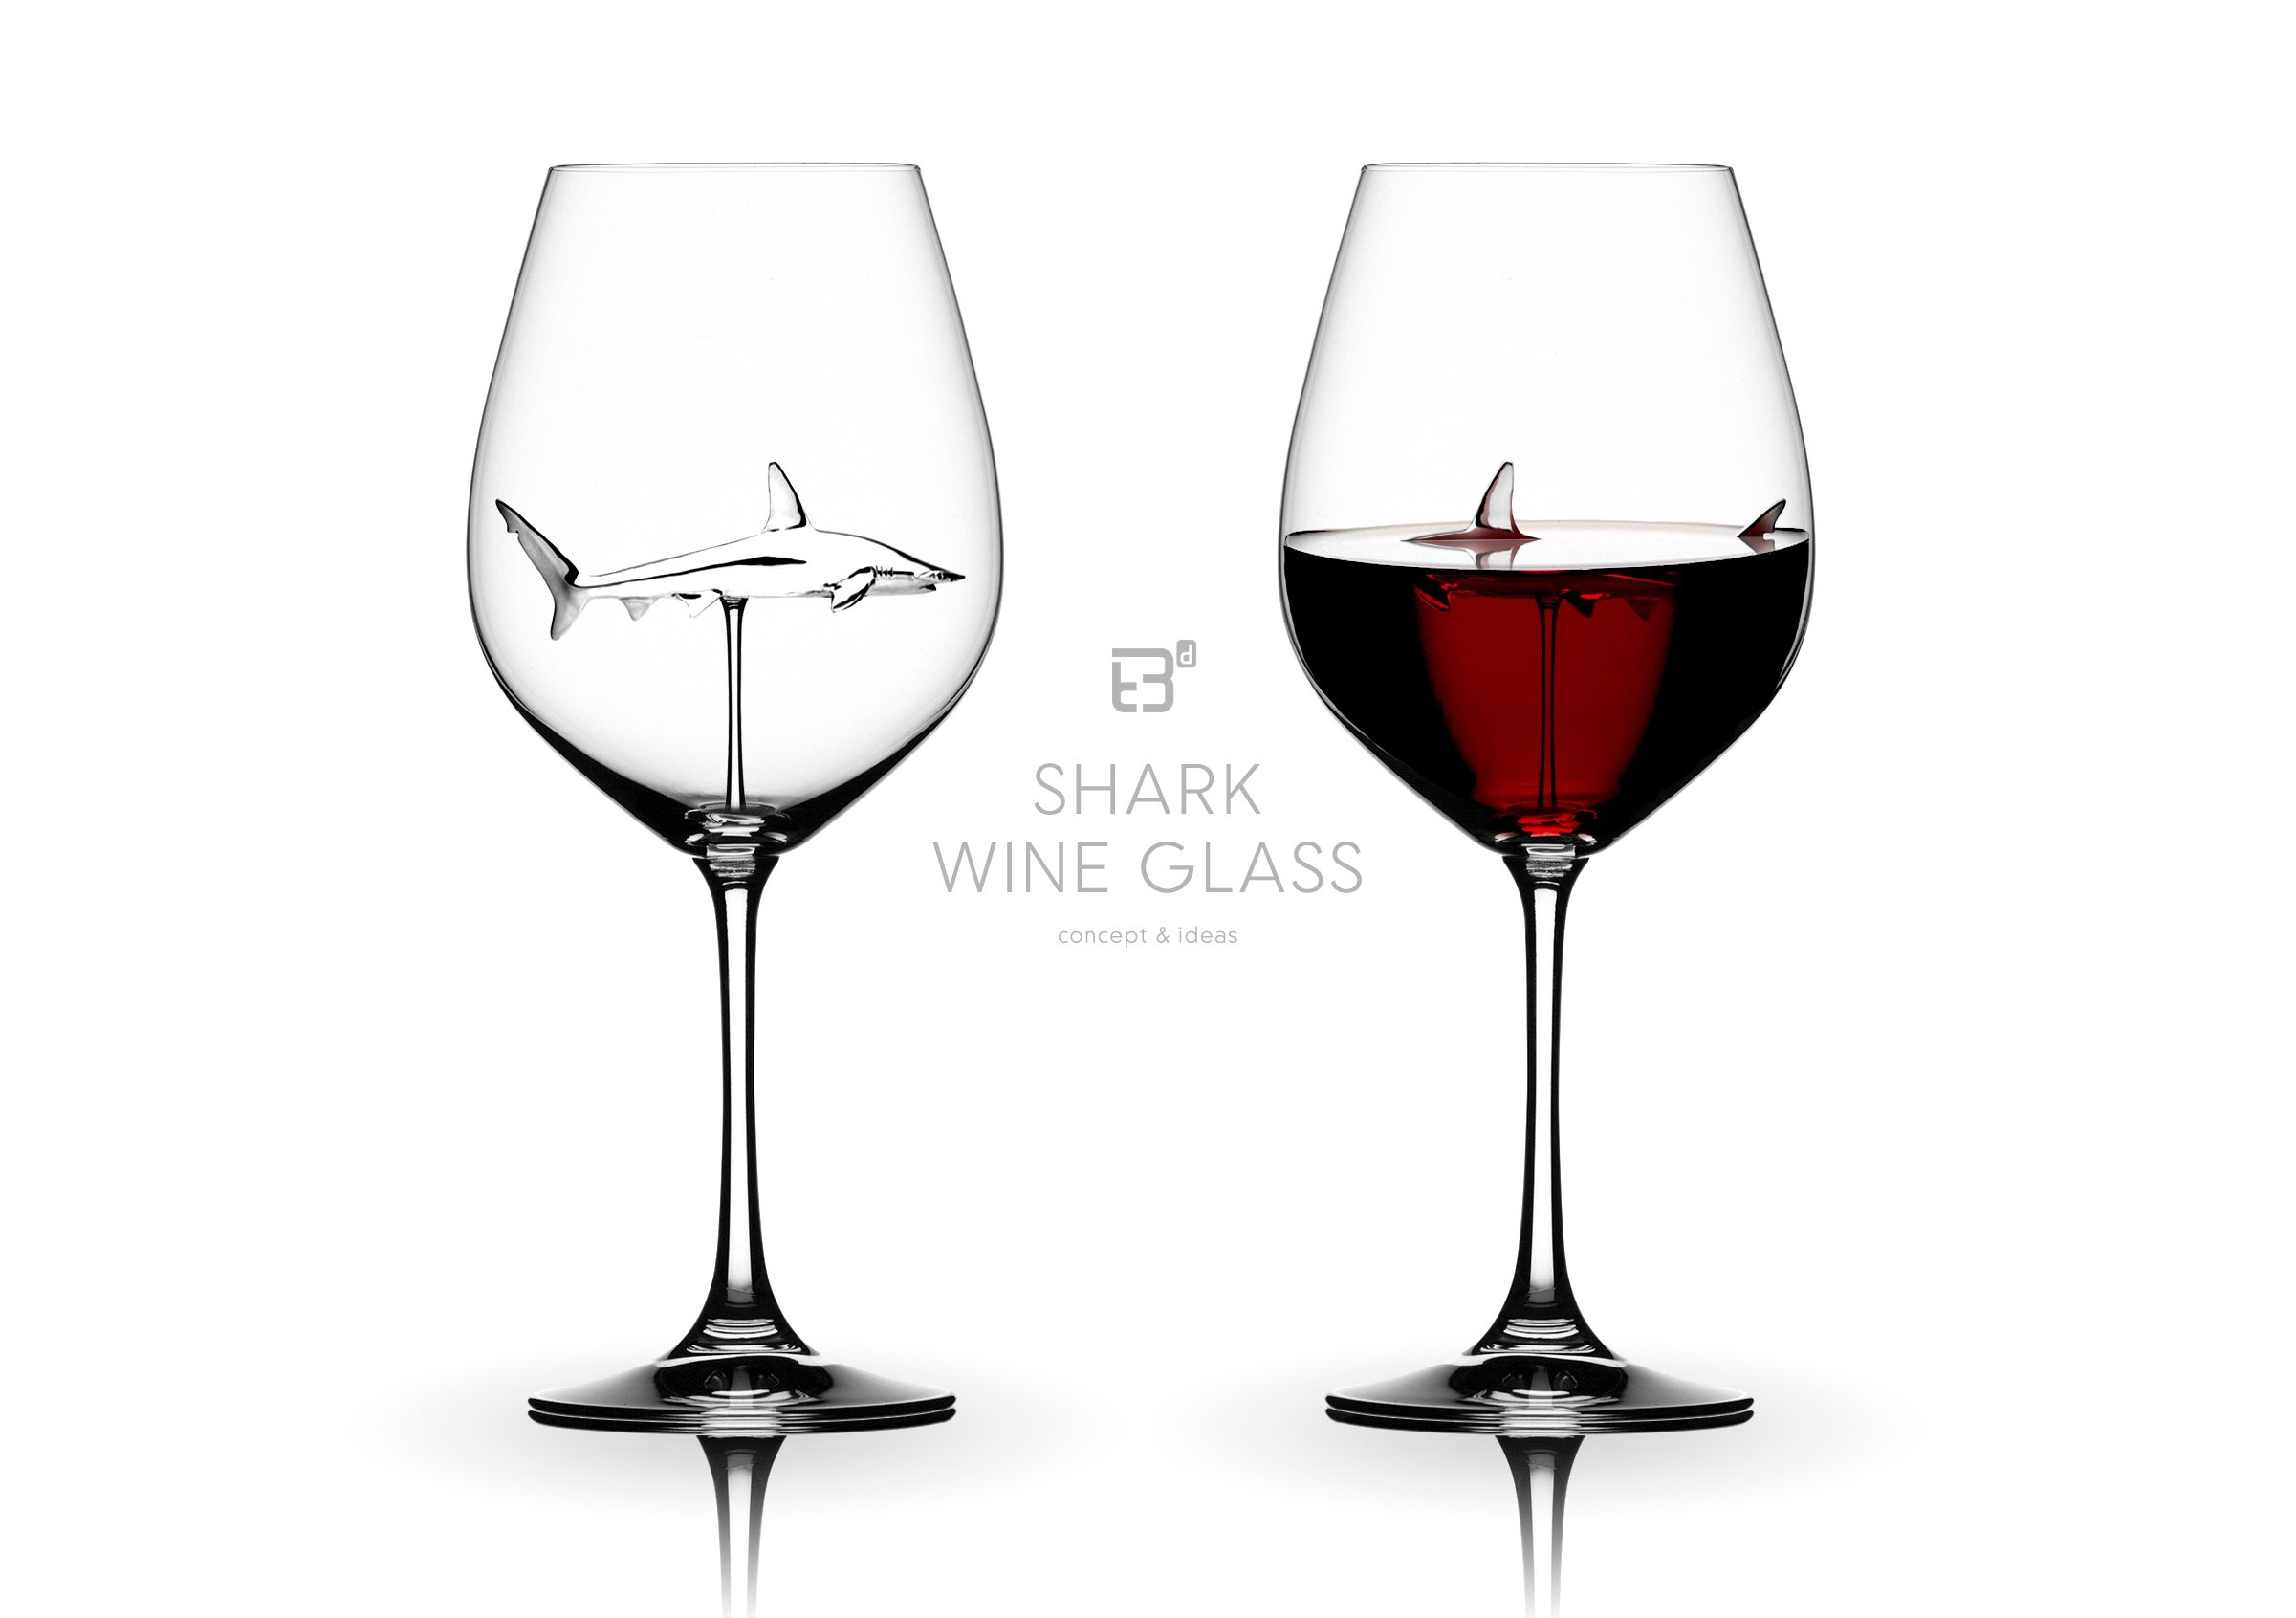 Shark wine glass concept ideas product design work for Billige deko sachen